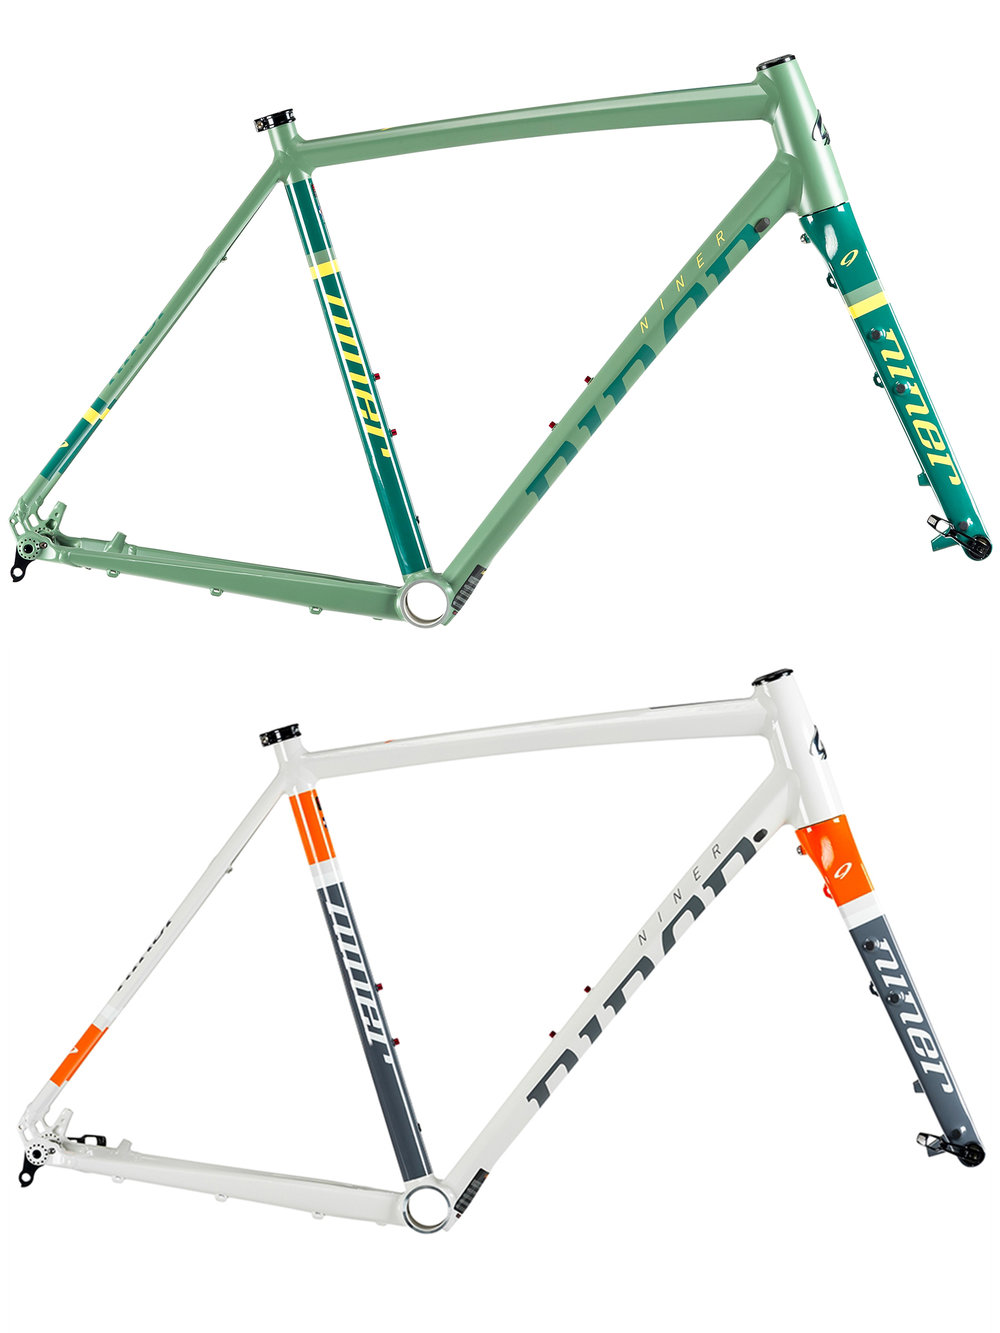 Niner-RLT-9-Frameset_Green - Yellow.jpg